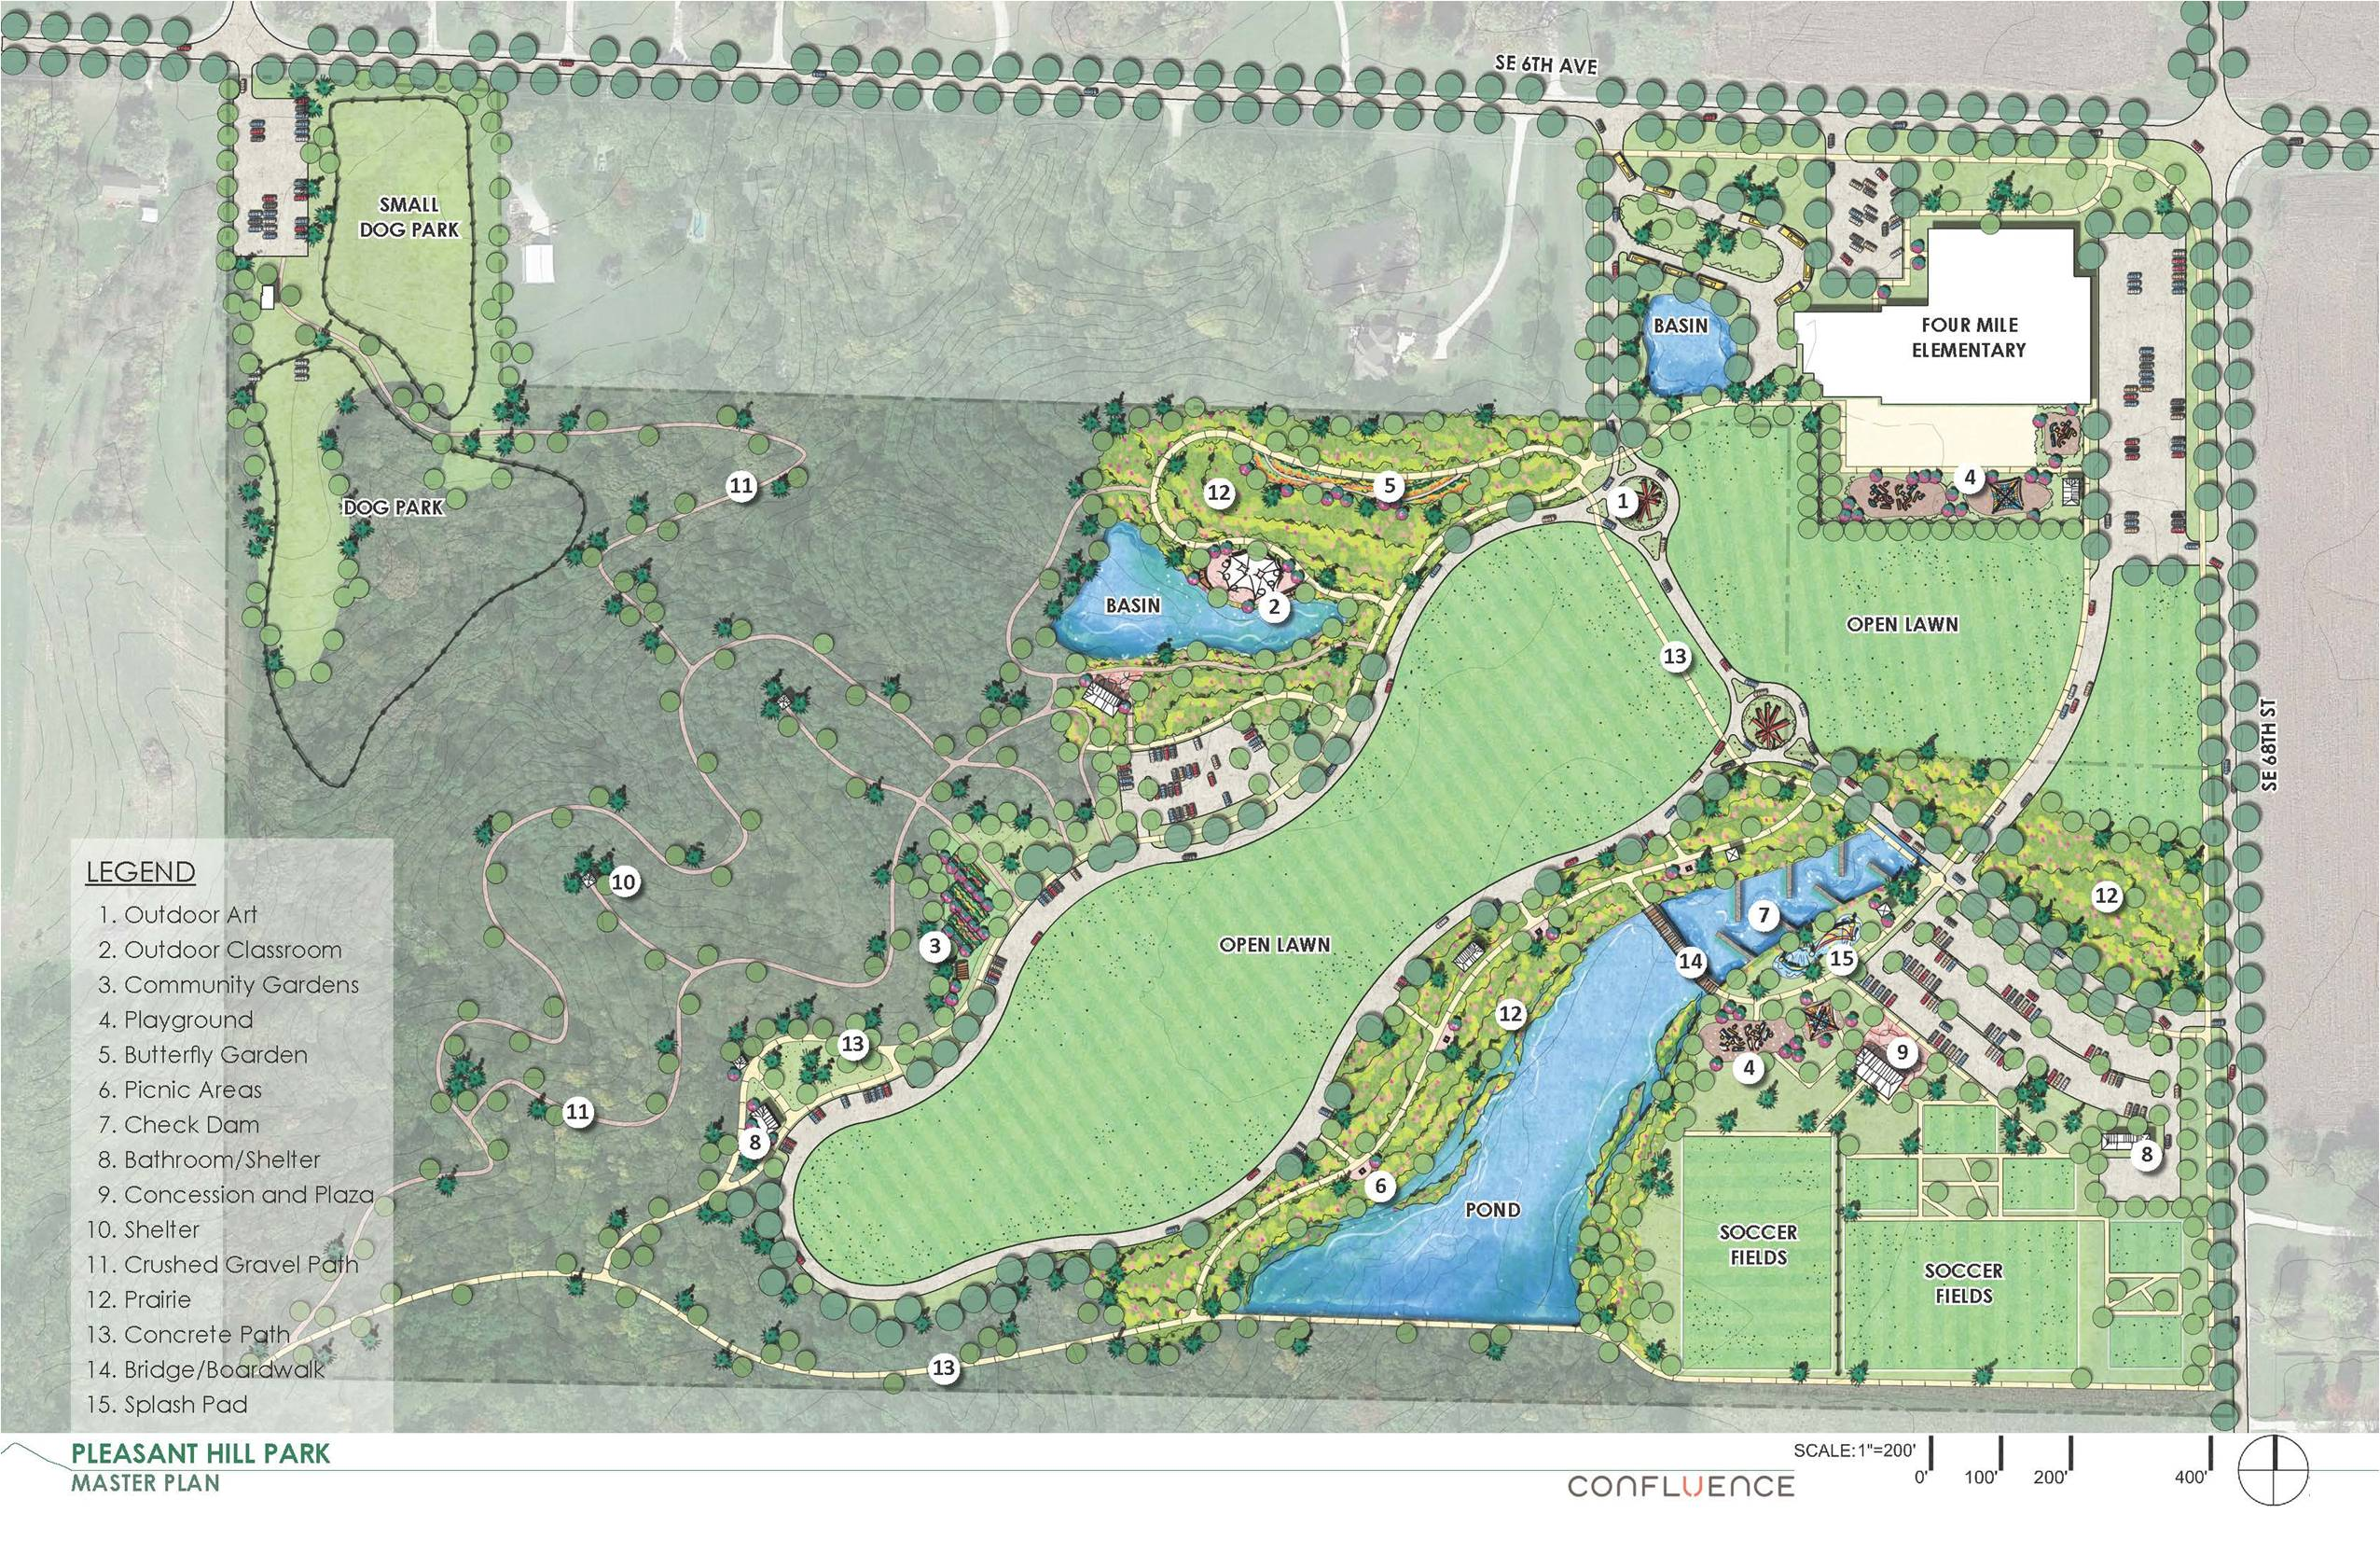 New 77-acre park master plan